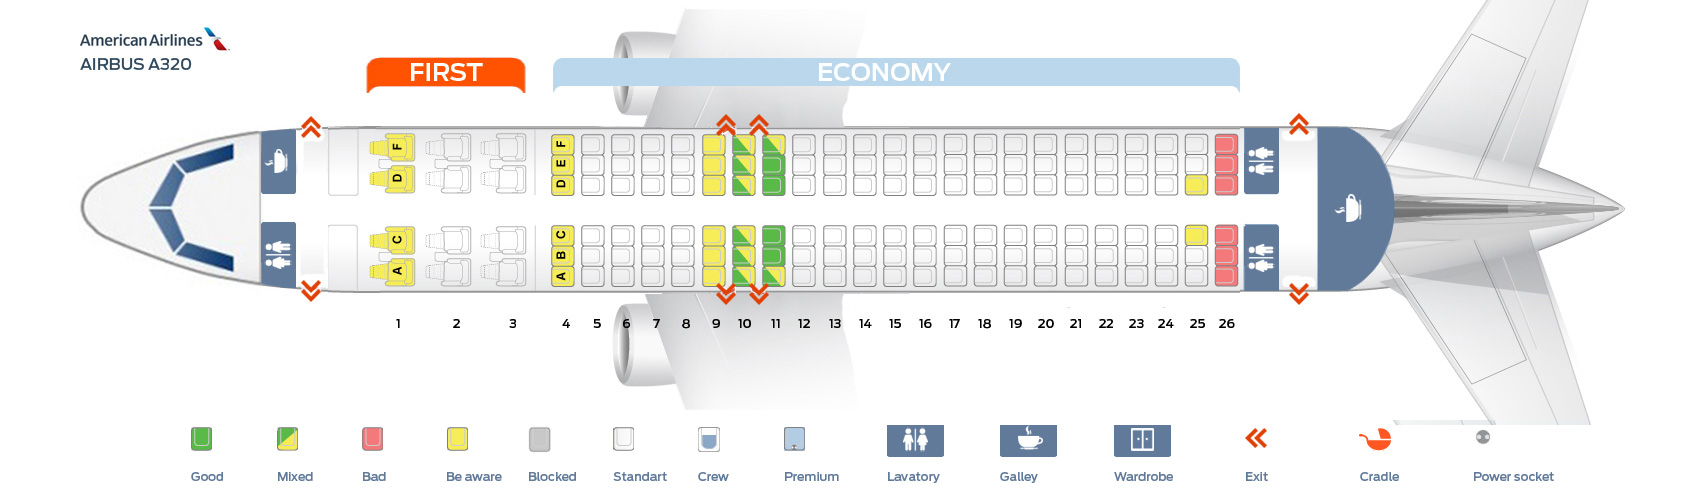 Seat Map Airbus A320 200 Quot American Airlines Quot Best Seats